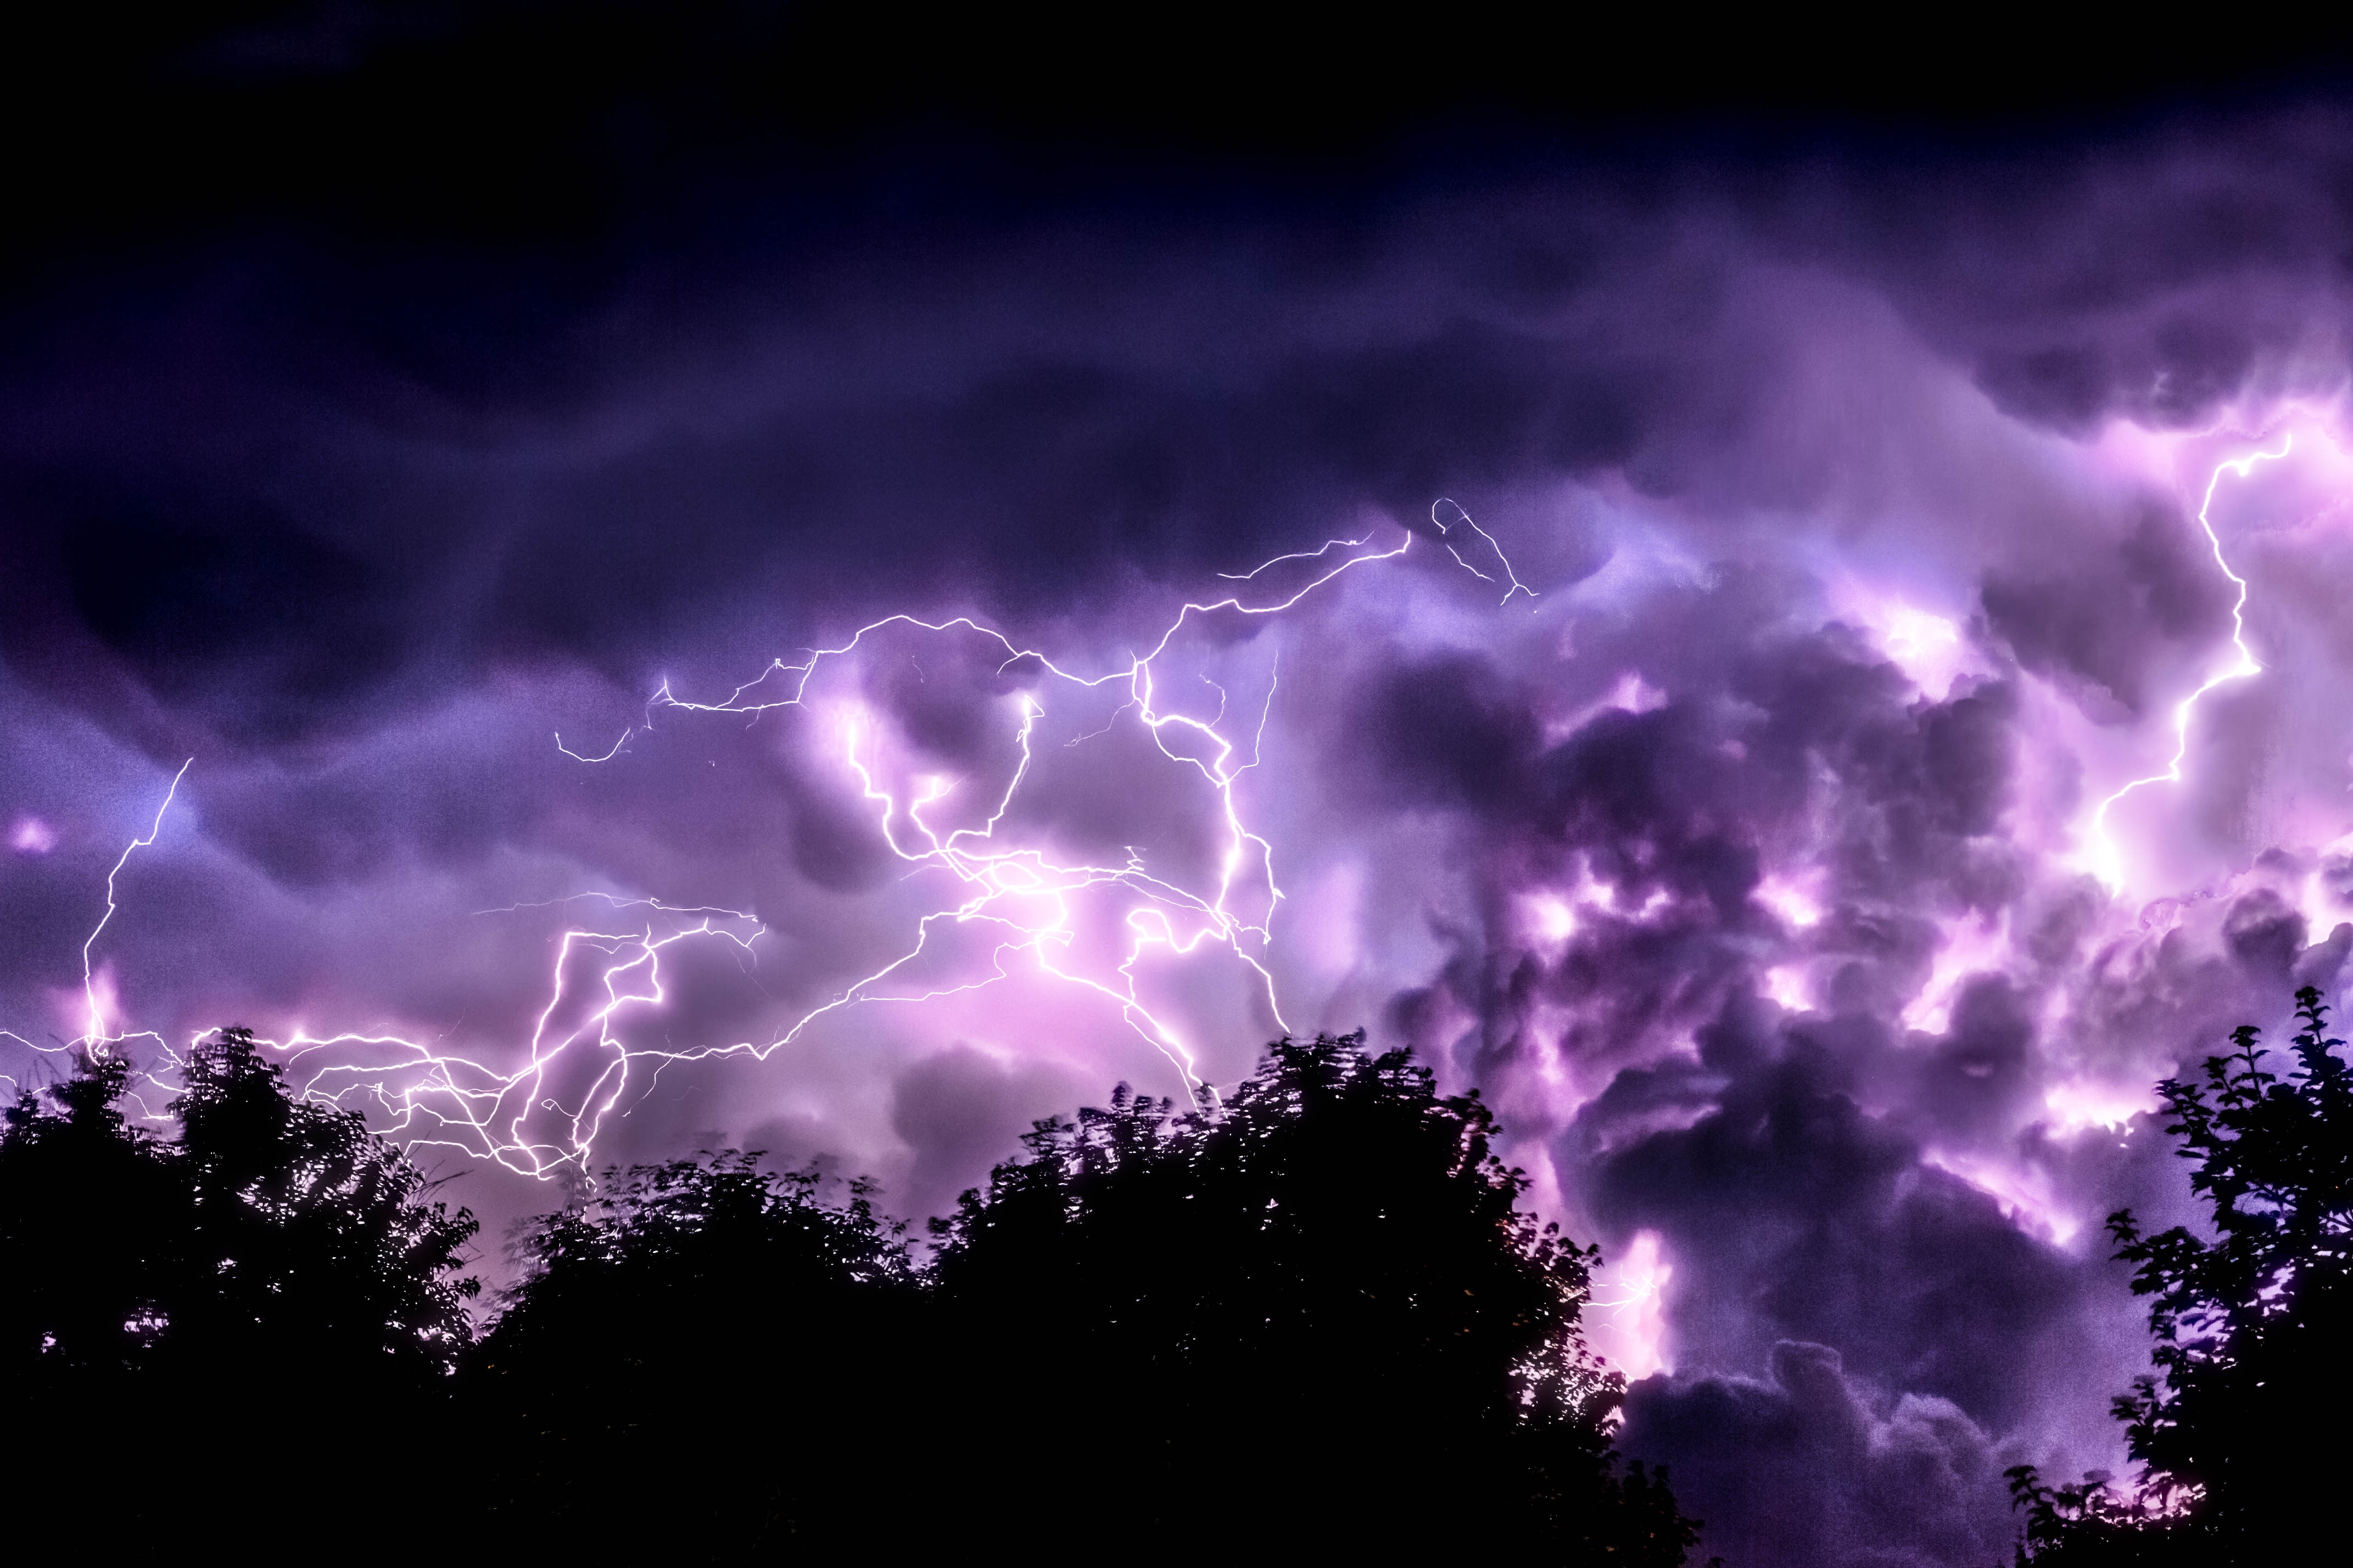 500 Thunderstorm Pictures Hd Download Free Images On Unsplash